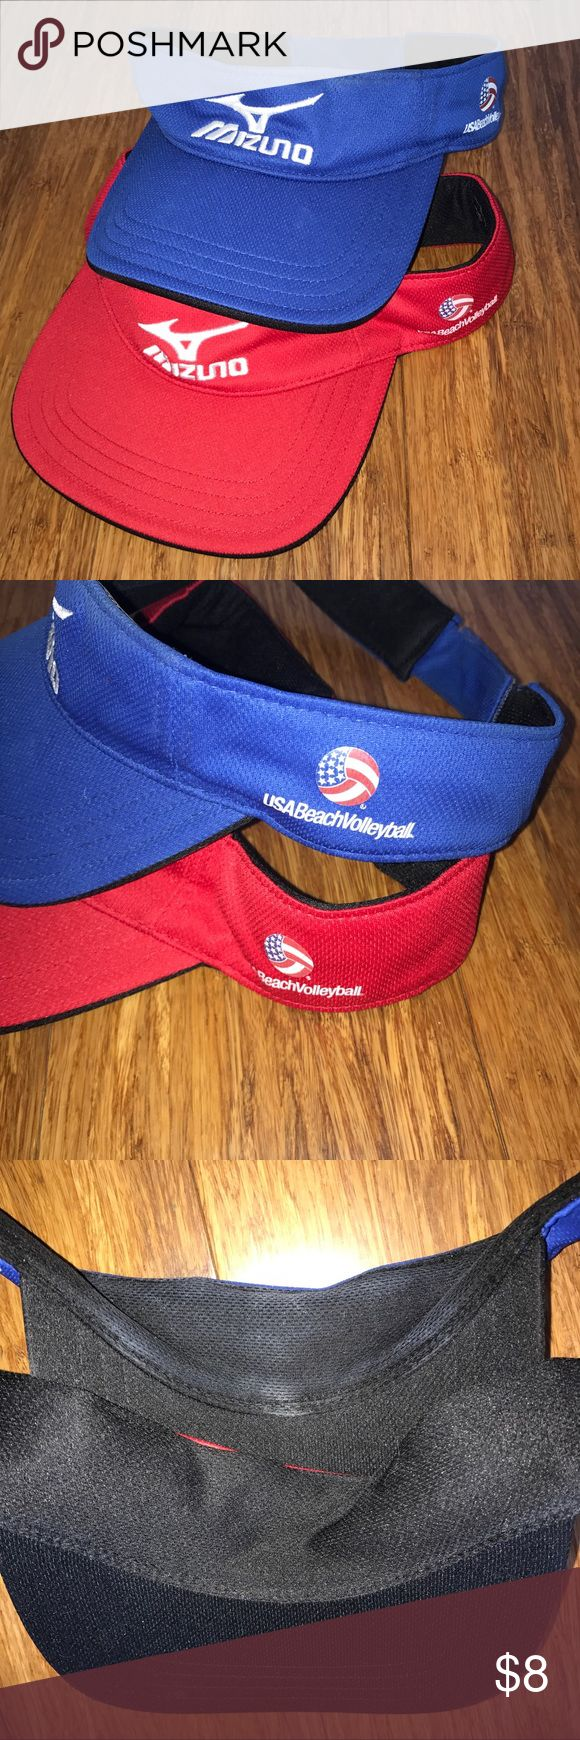 Mizuno USA Beach Volleyball logoed visors GUC These Mizuno USA Beach Volleyball logoed visors are a custom item, like the ones worn by April Ross in the 2016 Rio Olympic Games. Please specify blue or red. Red is pristine, blue has a tiny bit of marking on inside brow band (see photo.) All shipments are videotaped. Mizuno Accessories Hats